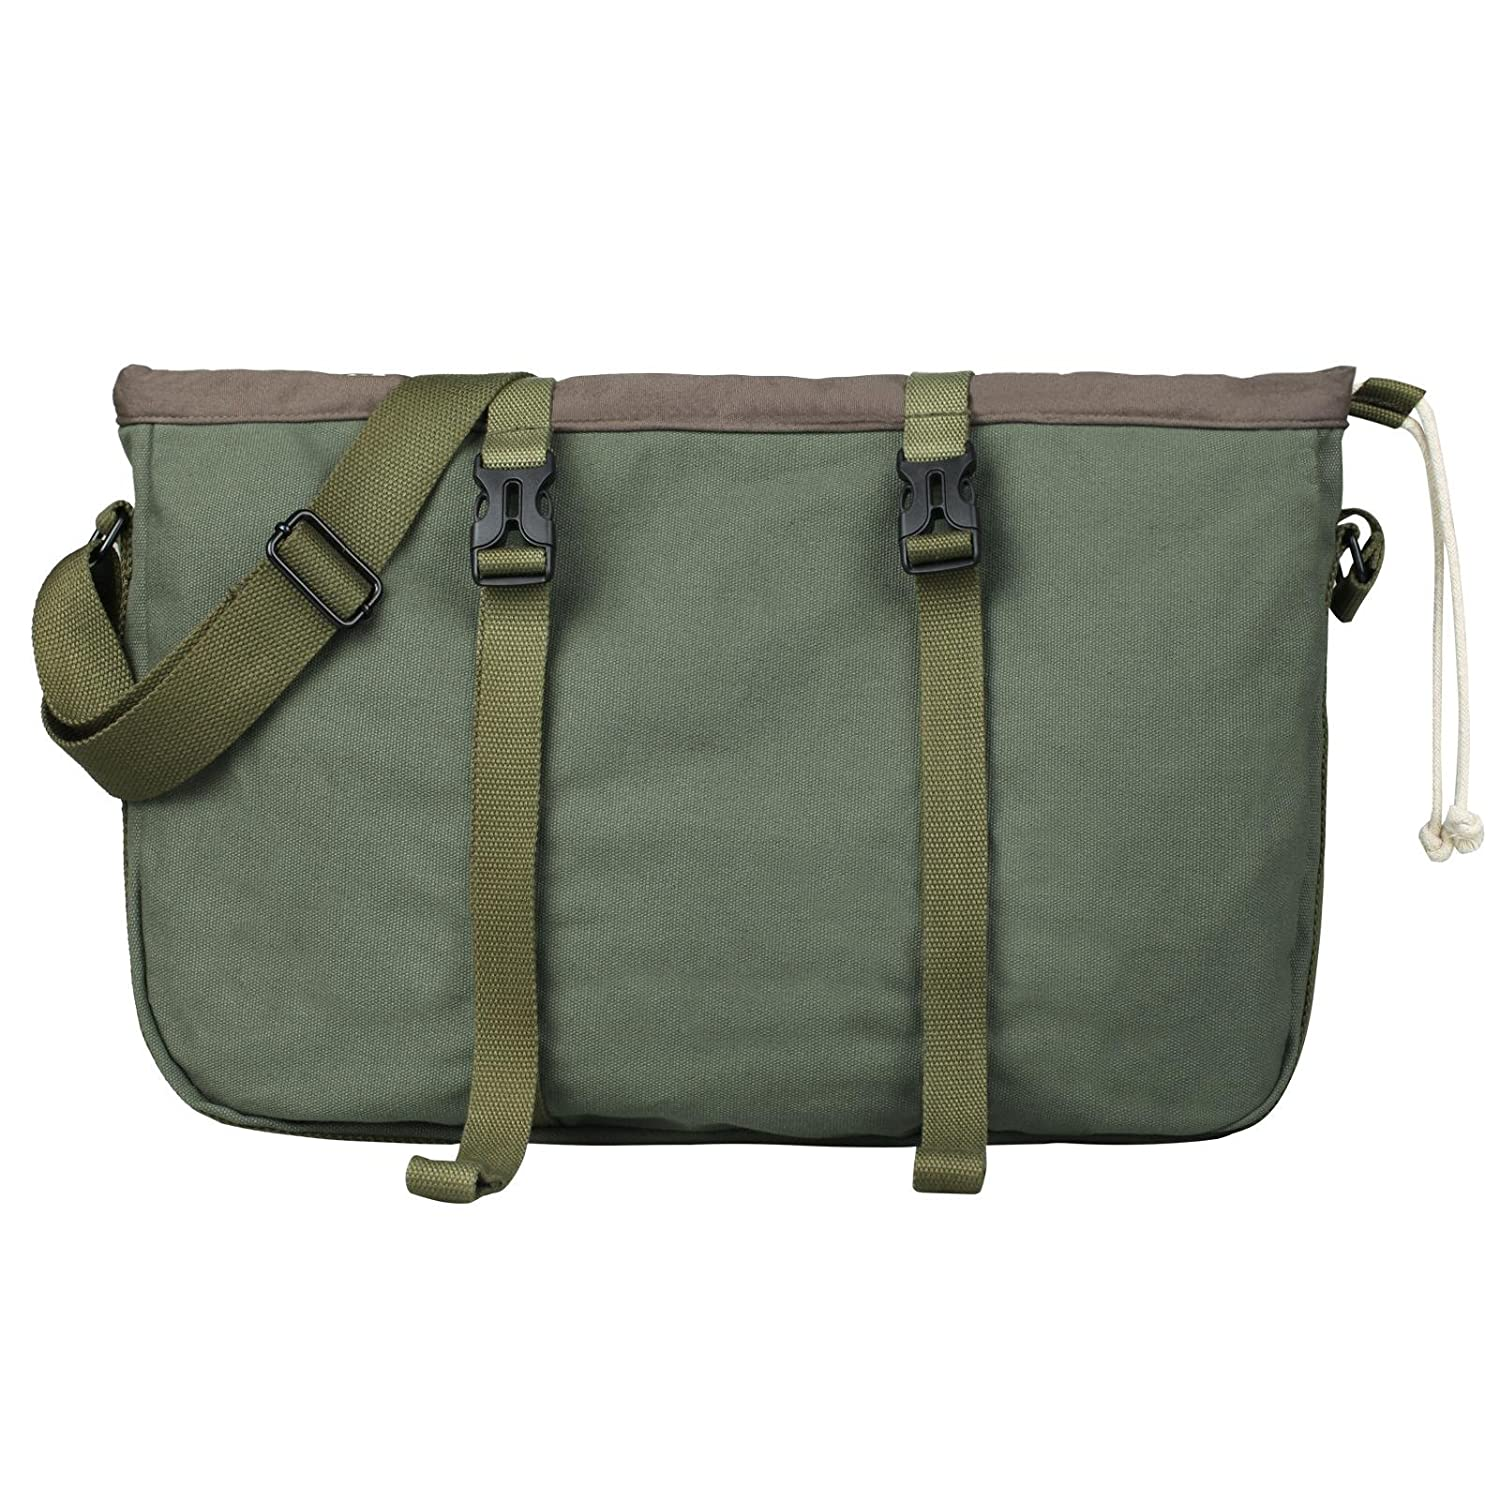 Superzero Water Resistant Canvas Messenger Shoulder Bag for MenWomen Vintage Business Laptop Computer Bag Fit Laptops 13 14 and up to 15.6 Inches